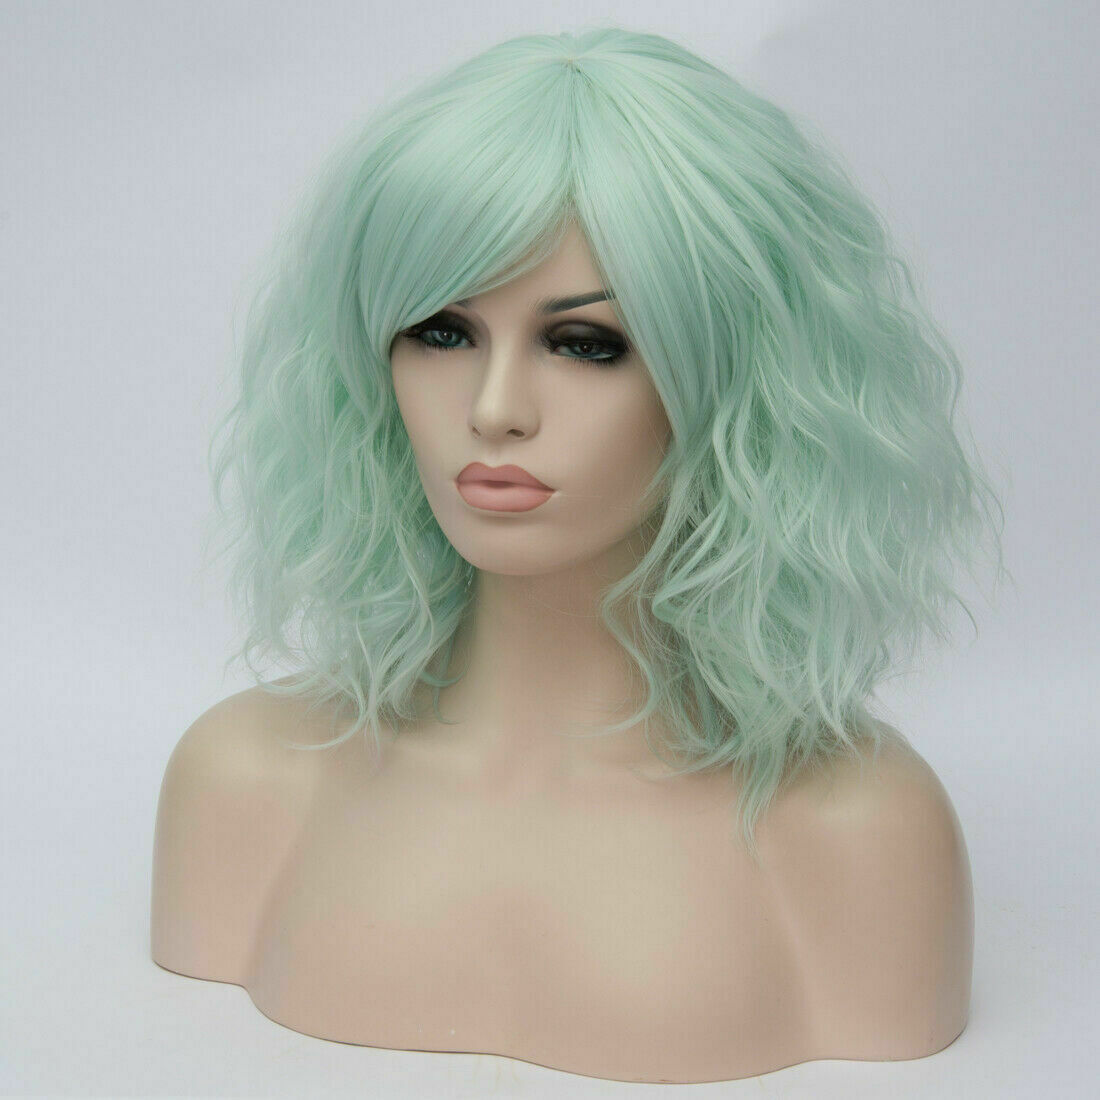 Lolita-Women-039-s-Short-Curly-Anime-Synthetic-Hair-Heat-Resistant-Cosplay-Party-Wig miniature 52